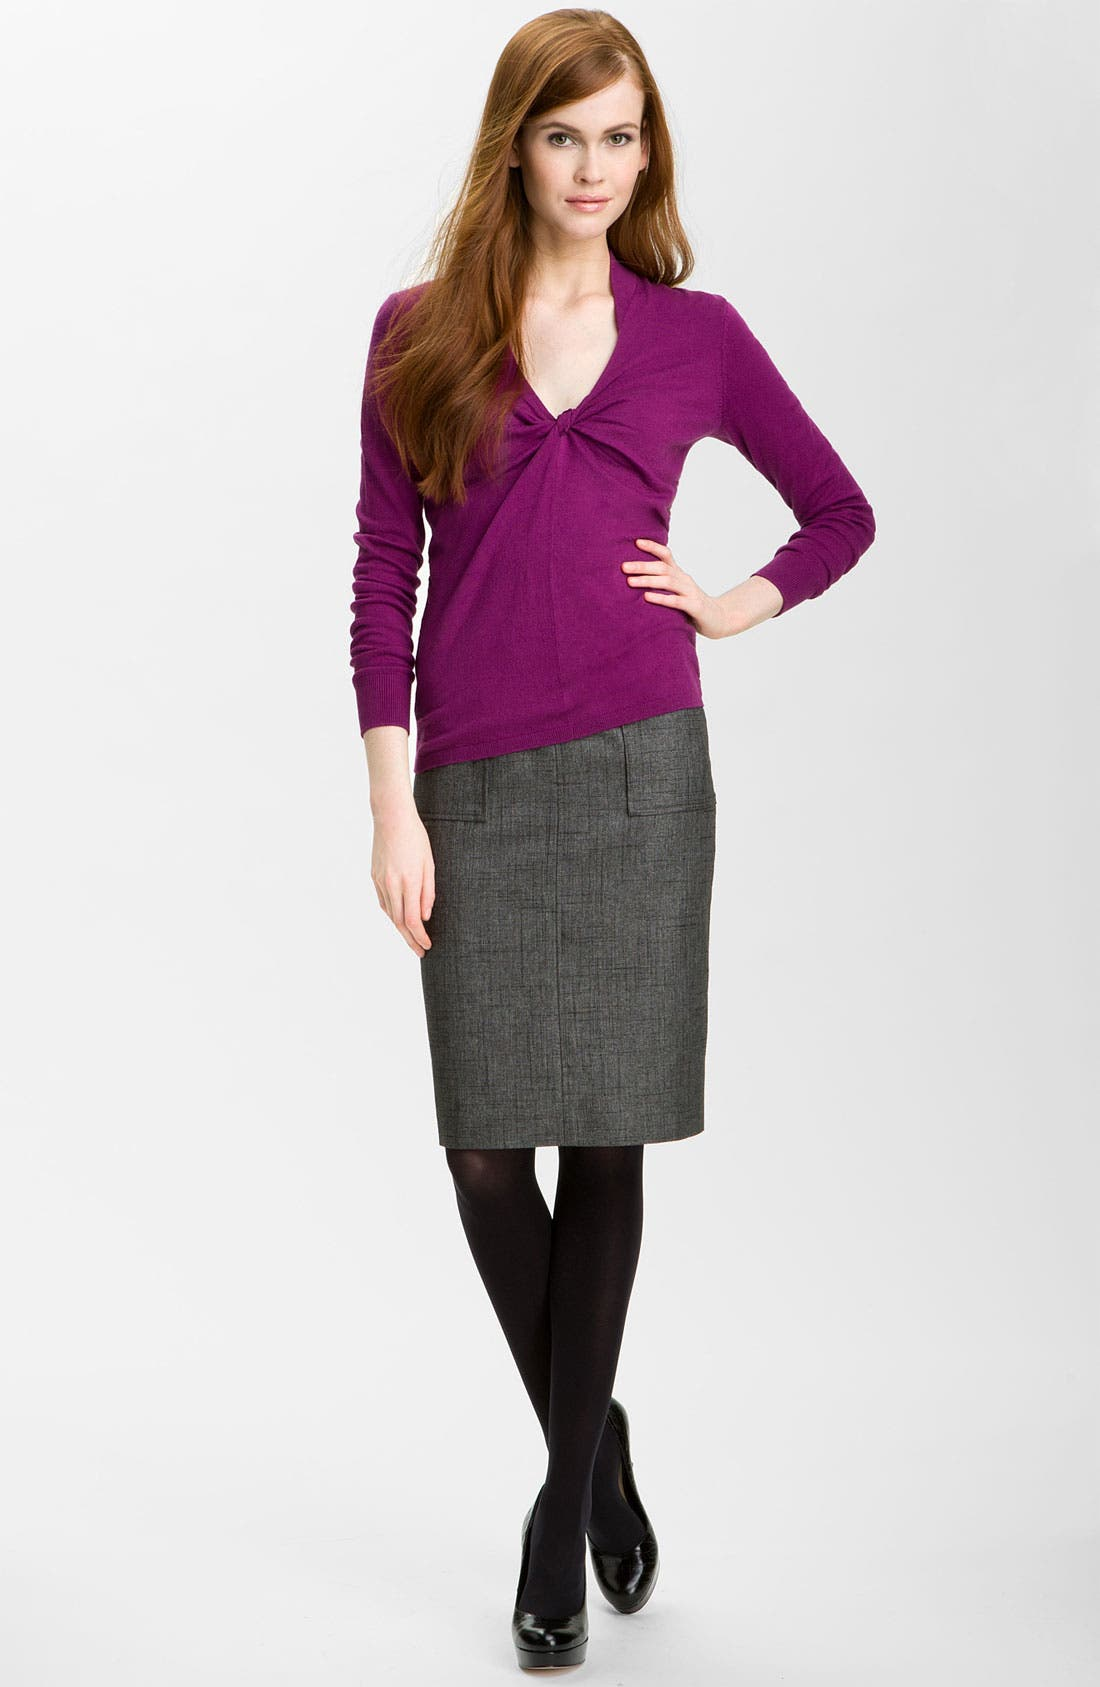 Patch Pocket Pencil Skirt,                             Alternate thumbnail 2, color,                             001